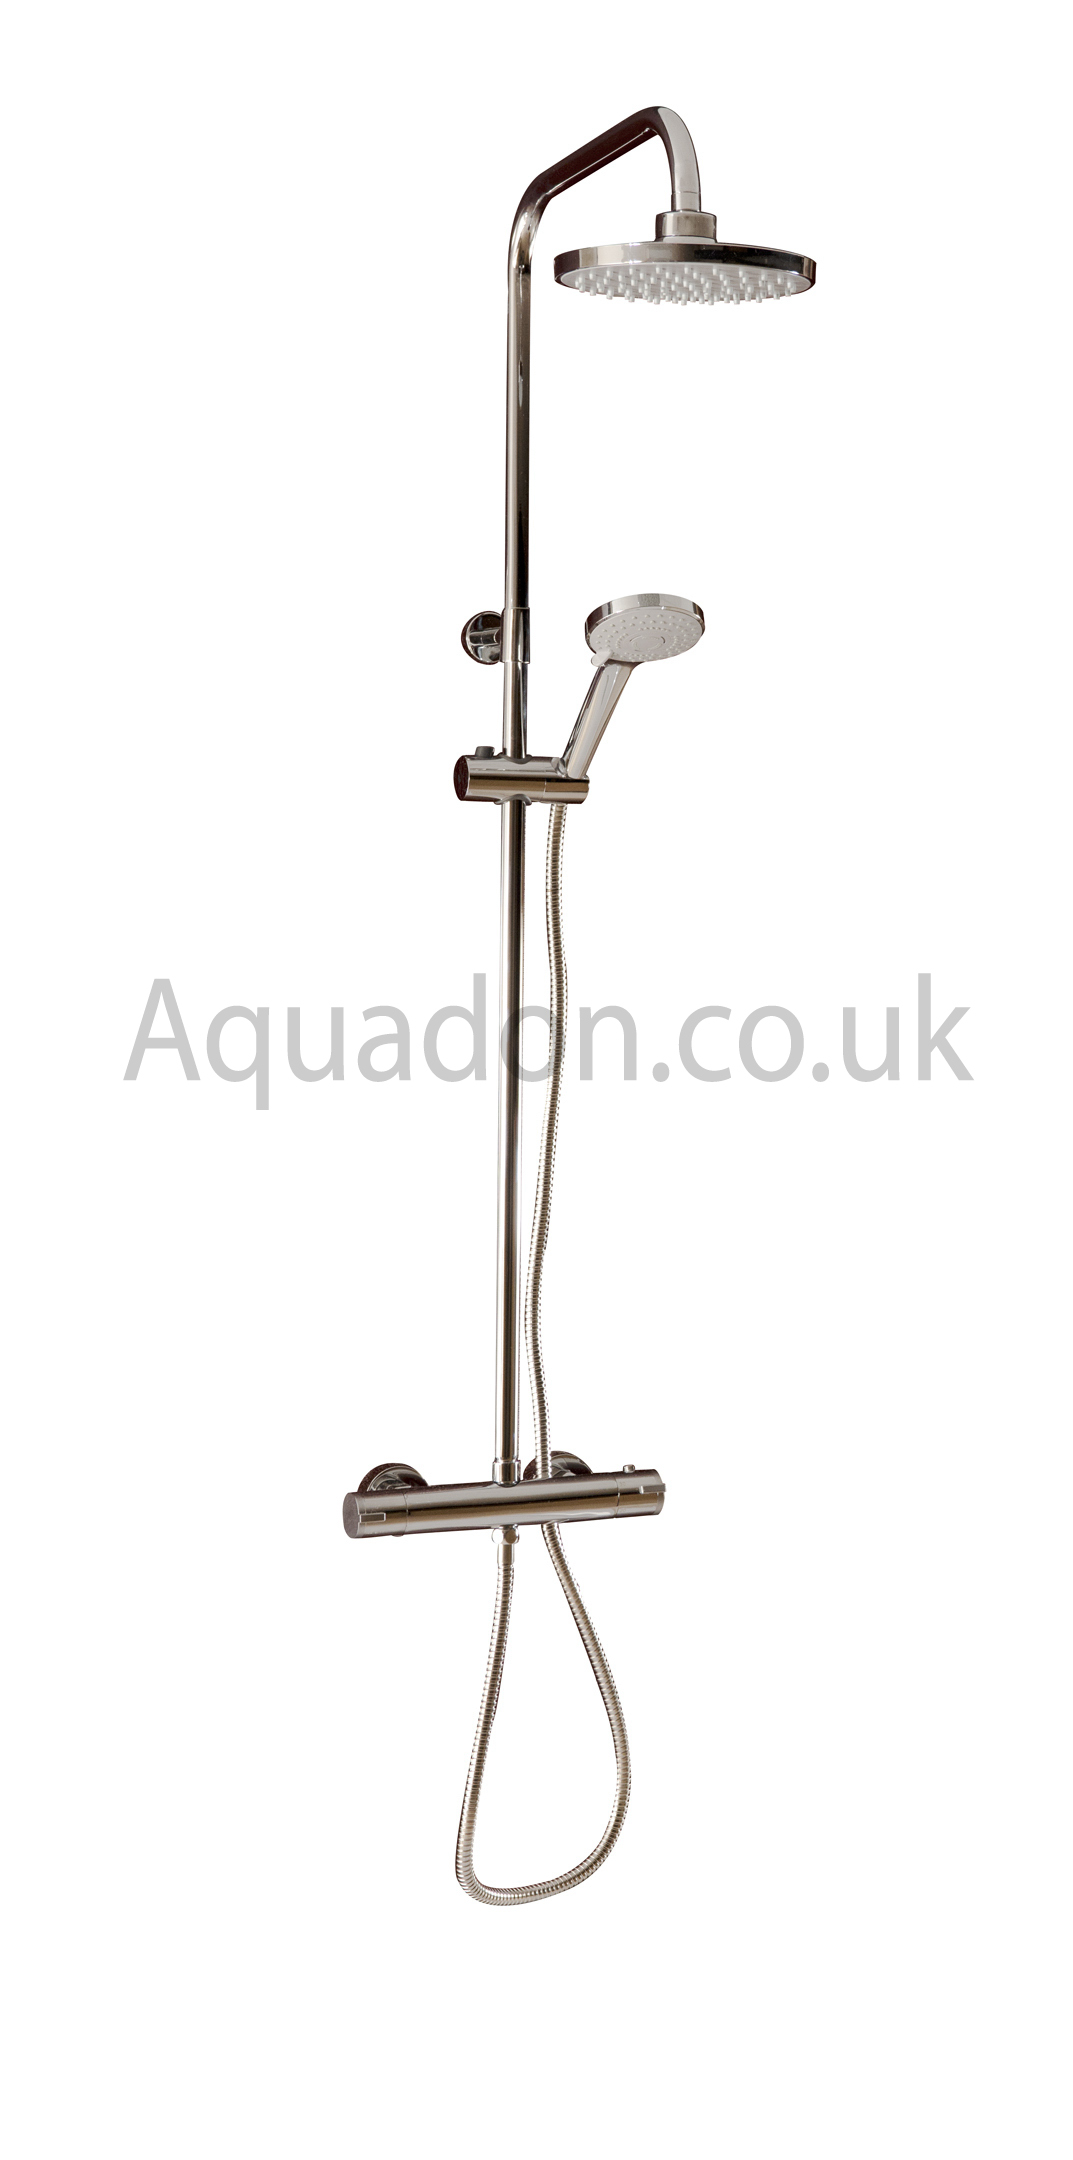 thermostatic shower mixer bar valve tap square round head